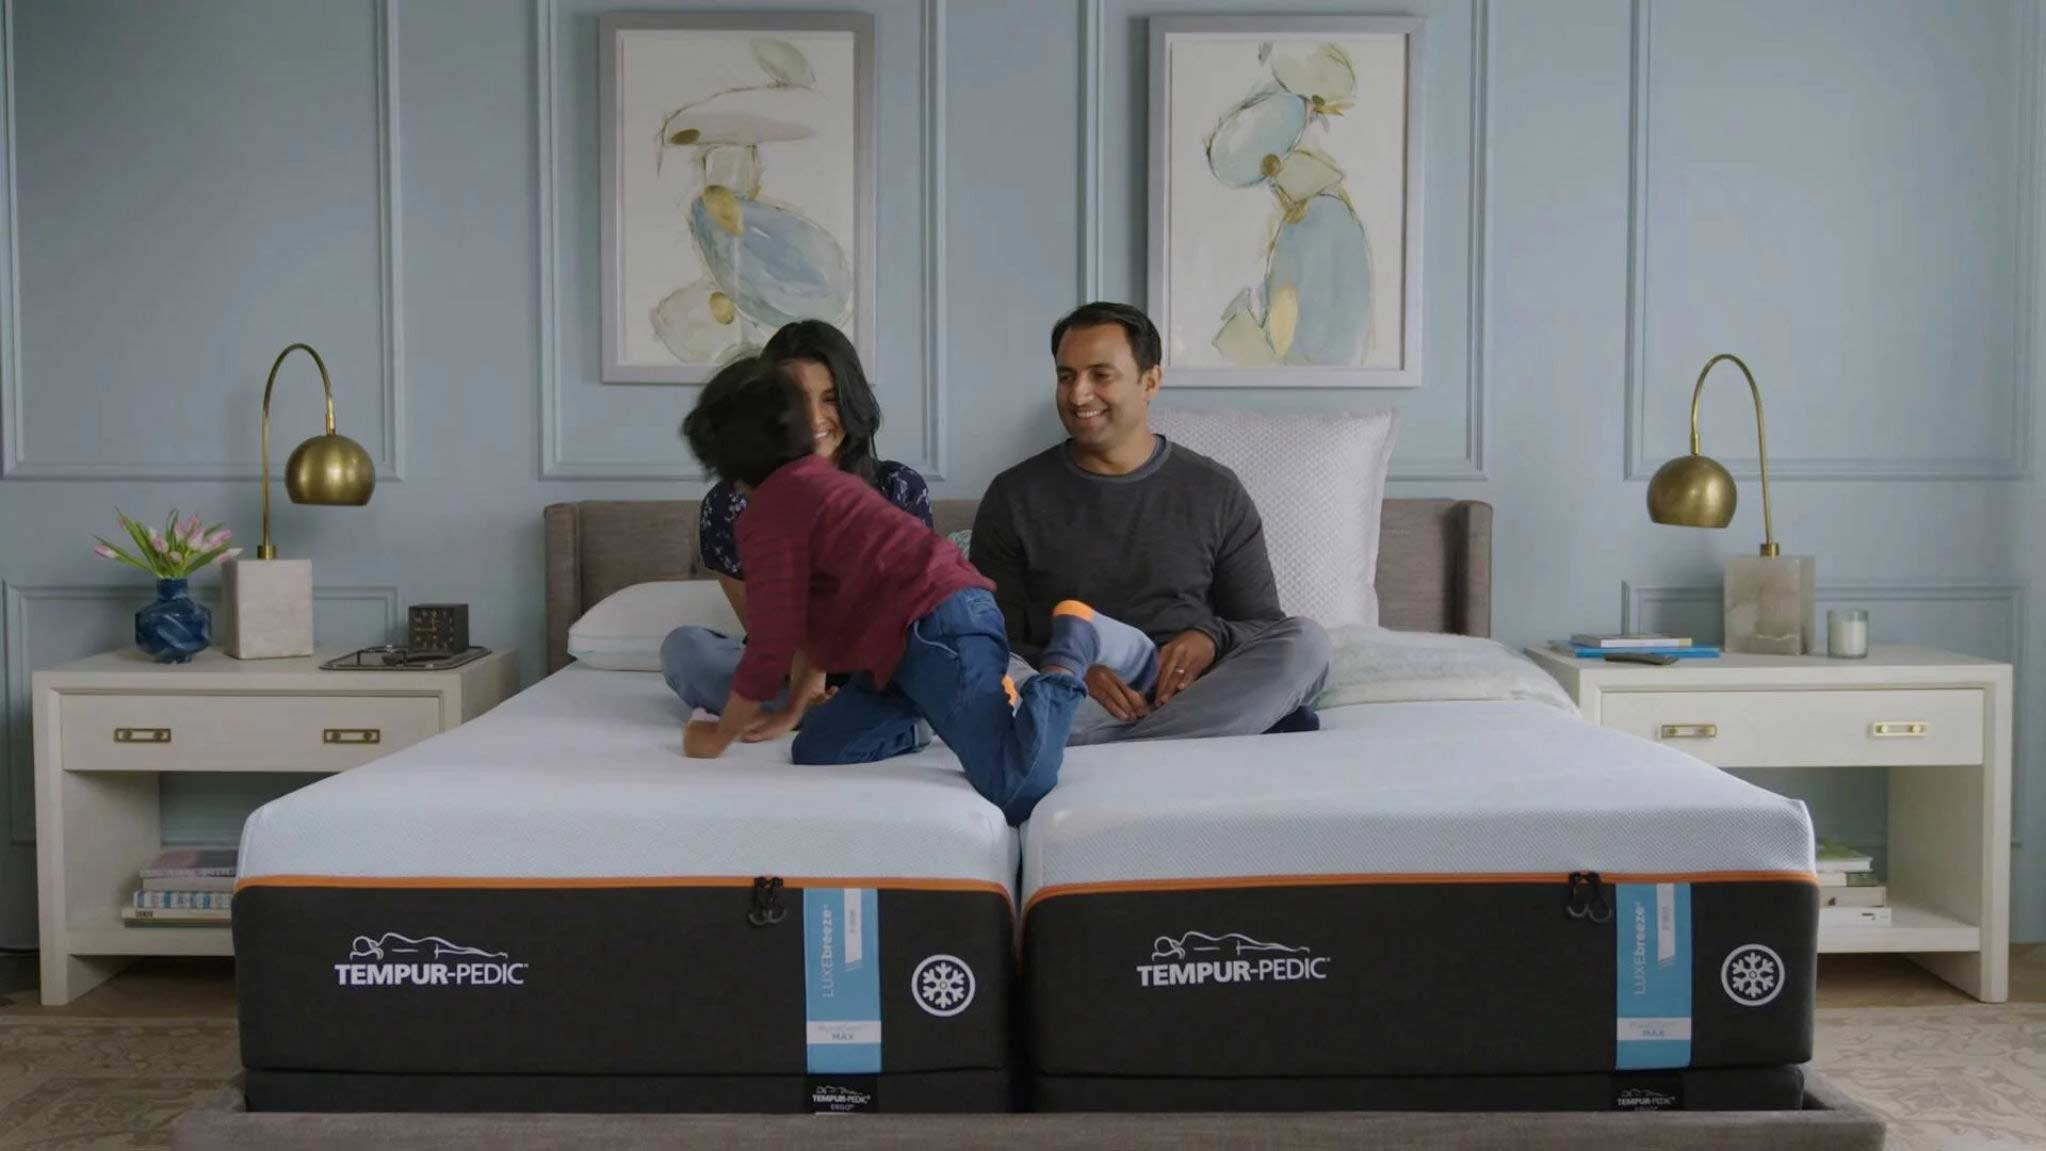 A family sitting on a Tempur-Pedic bed.